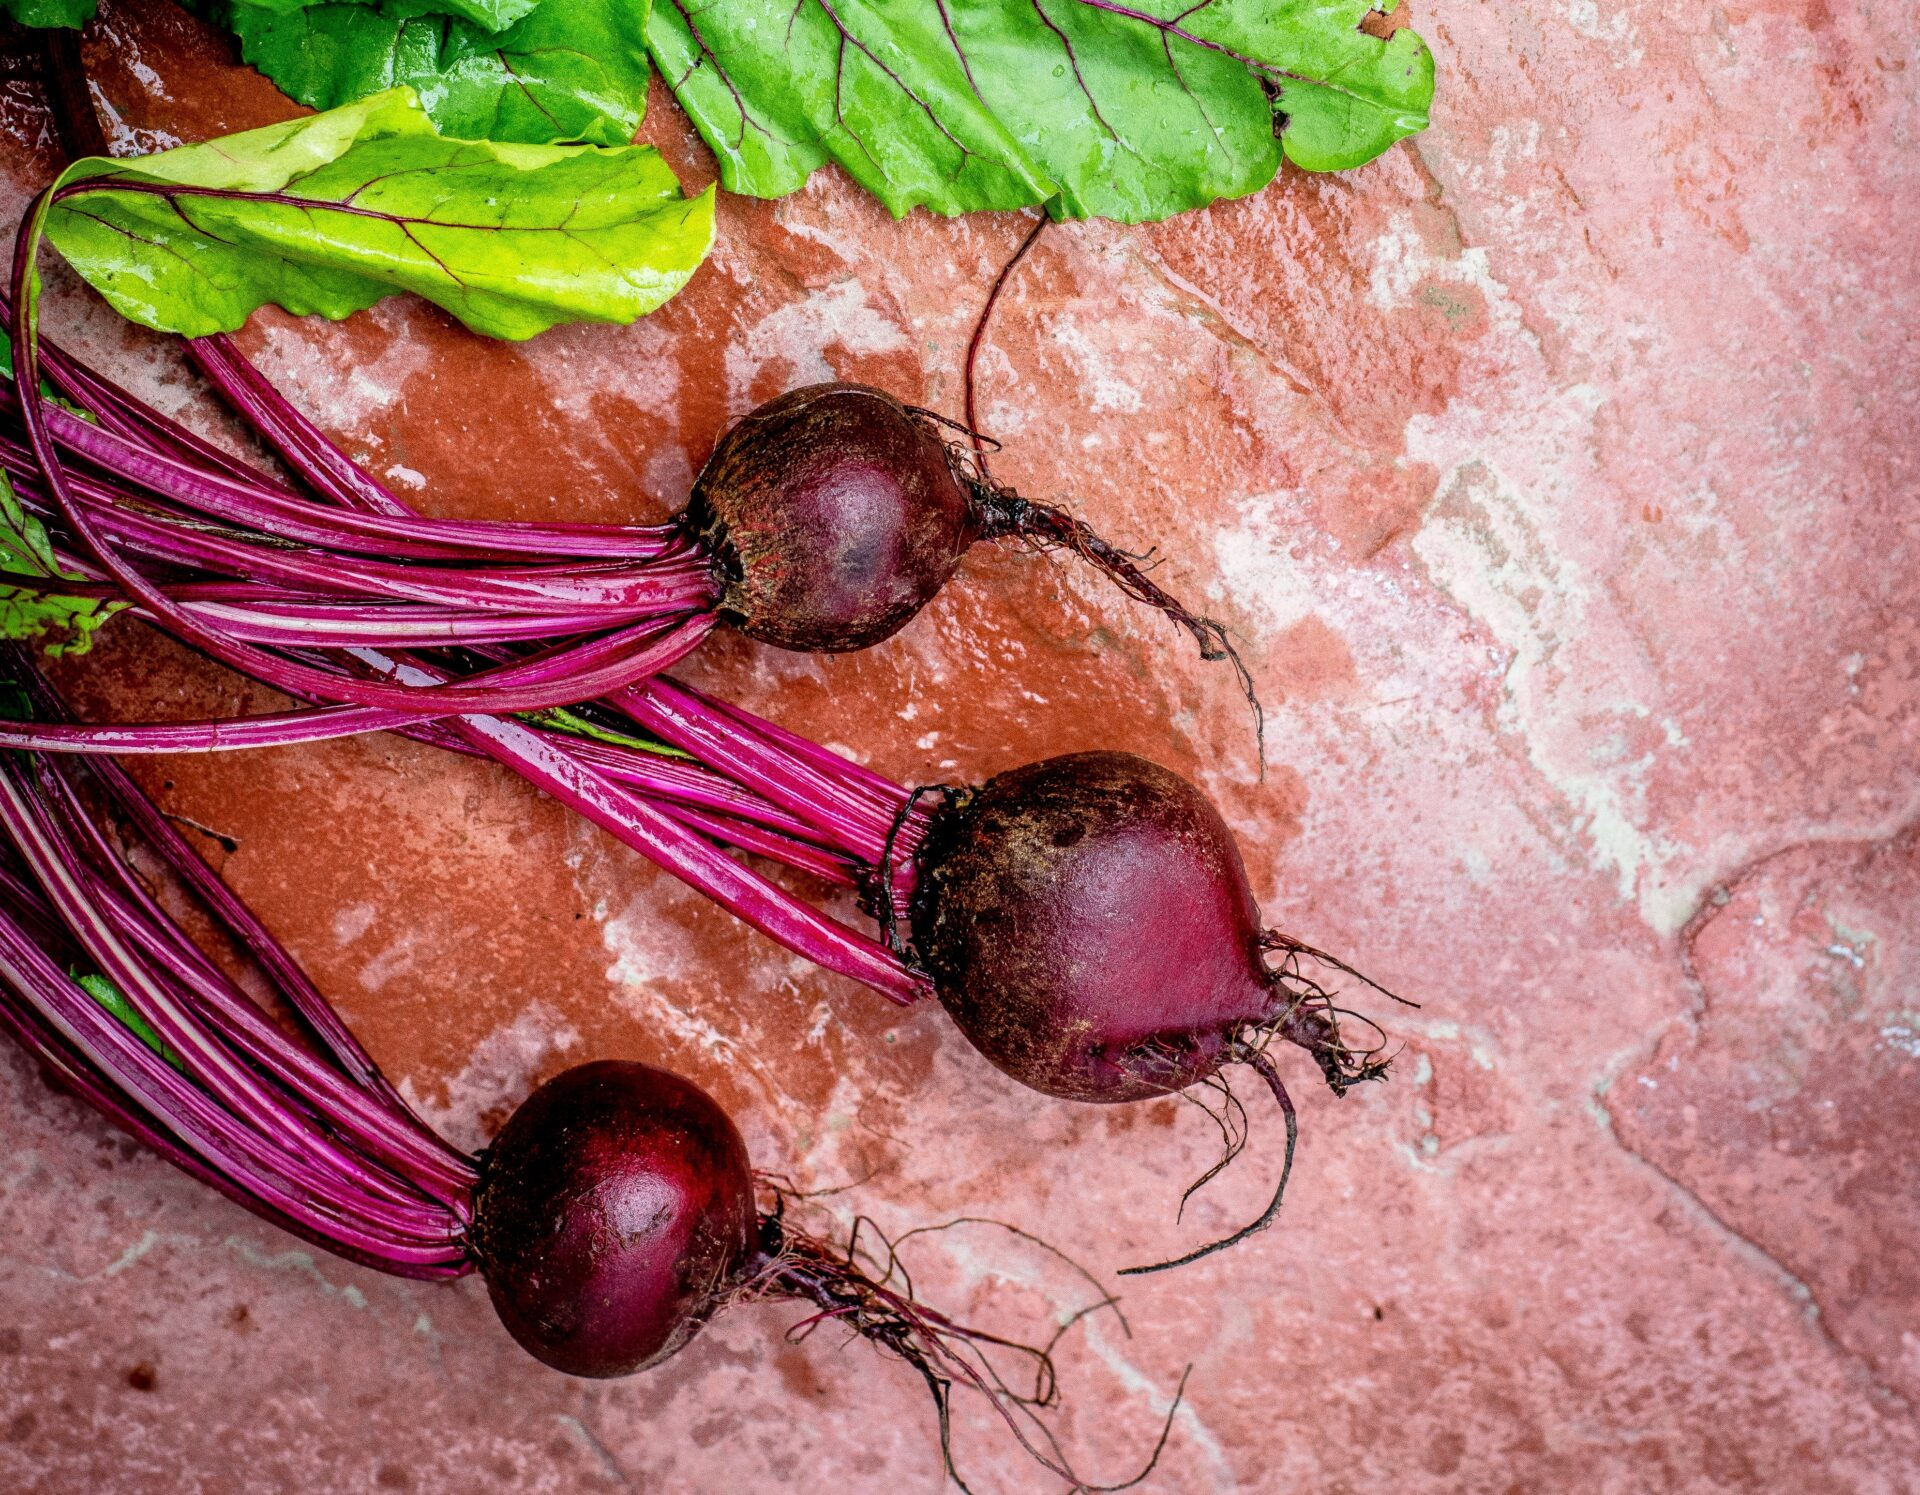 Beetroot on a bench